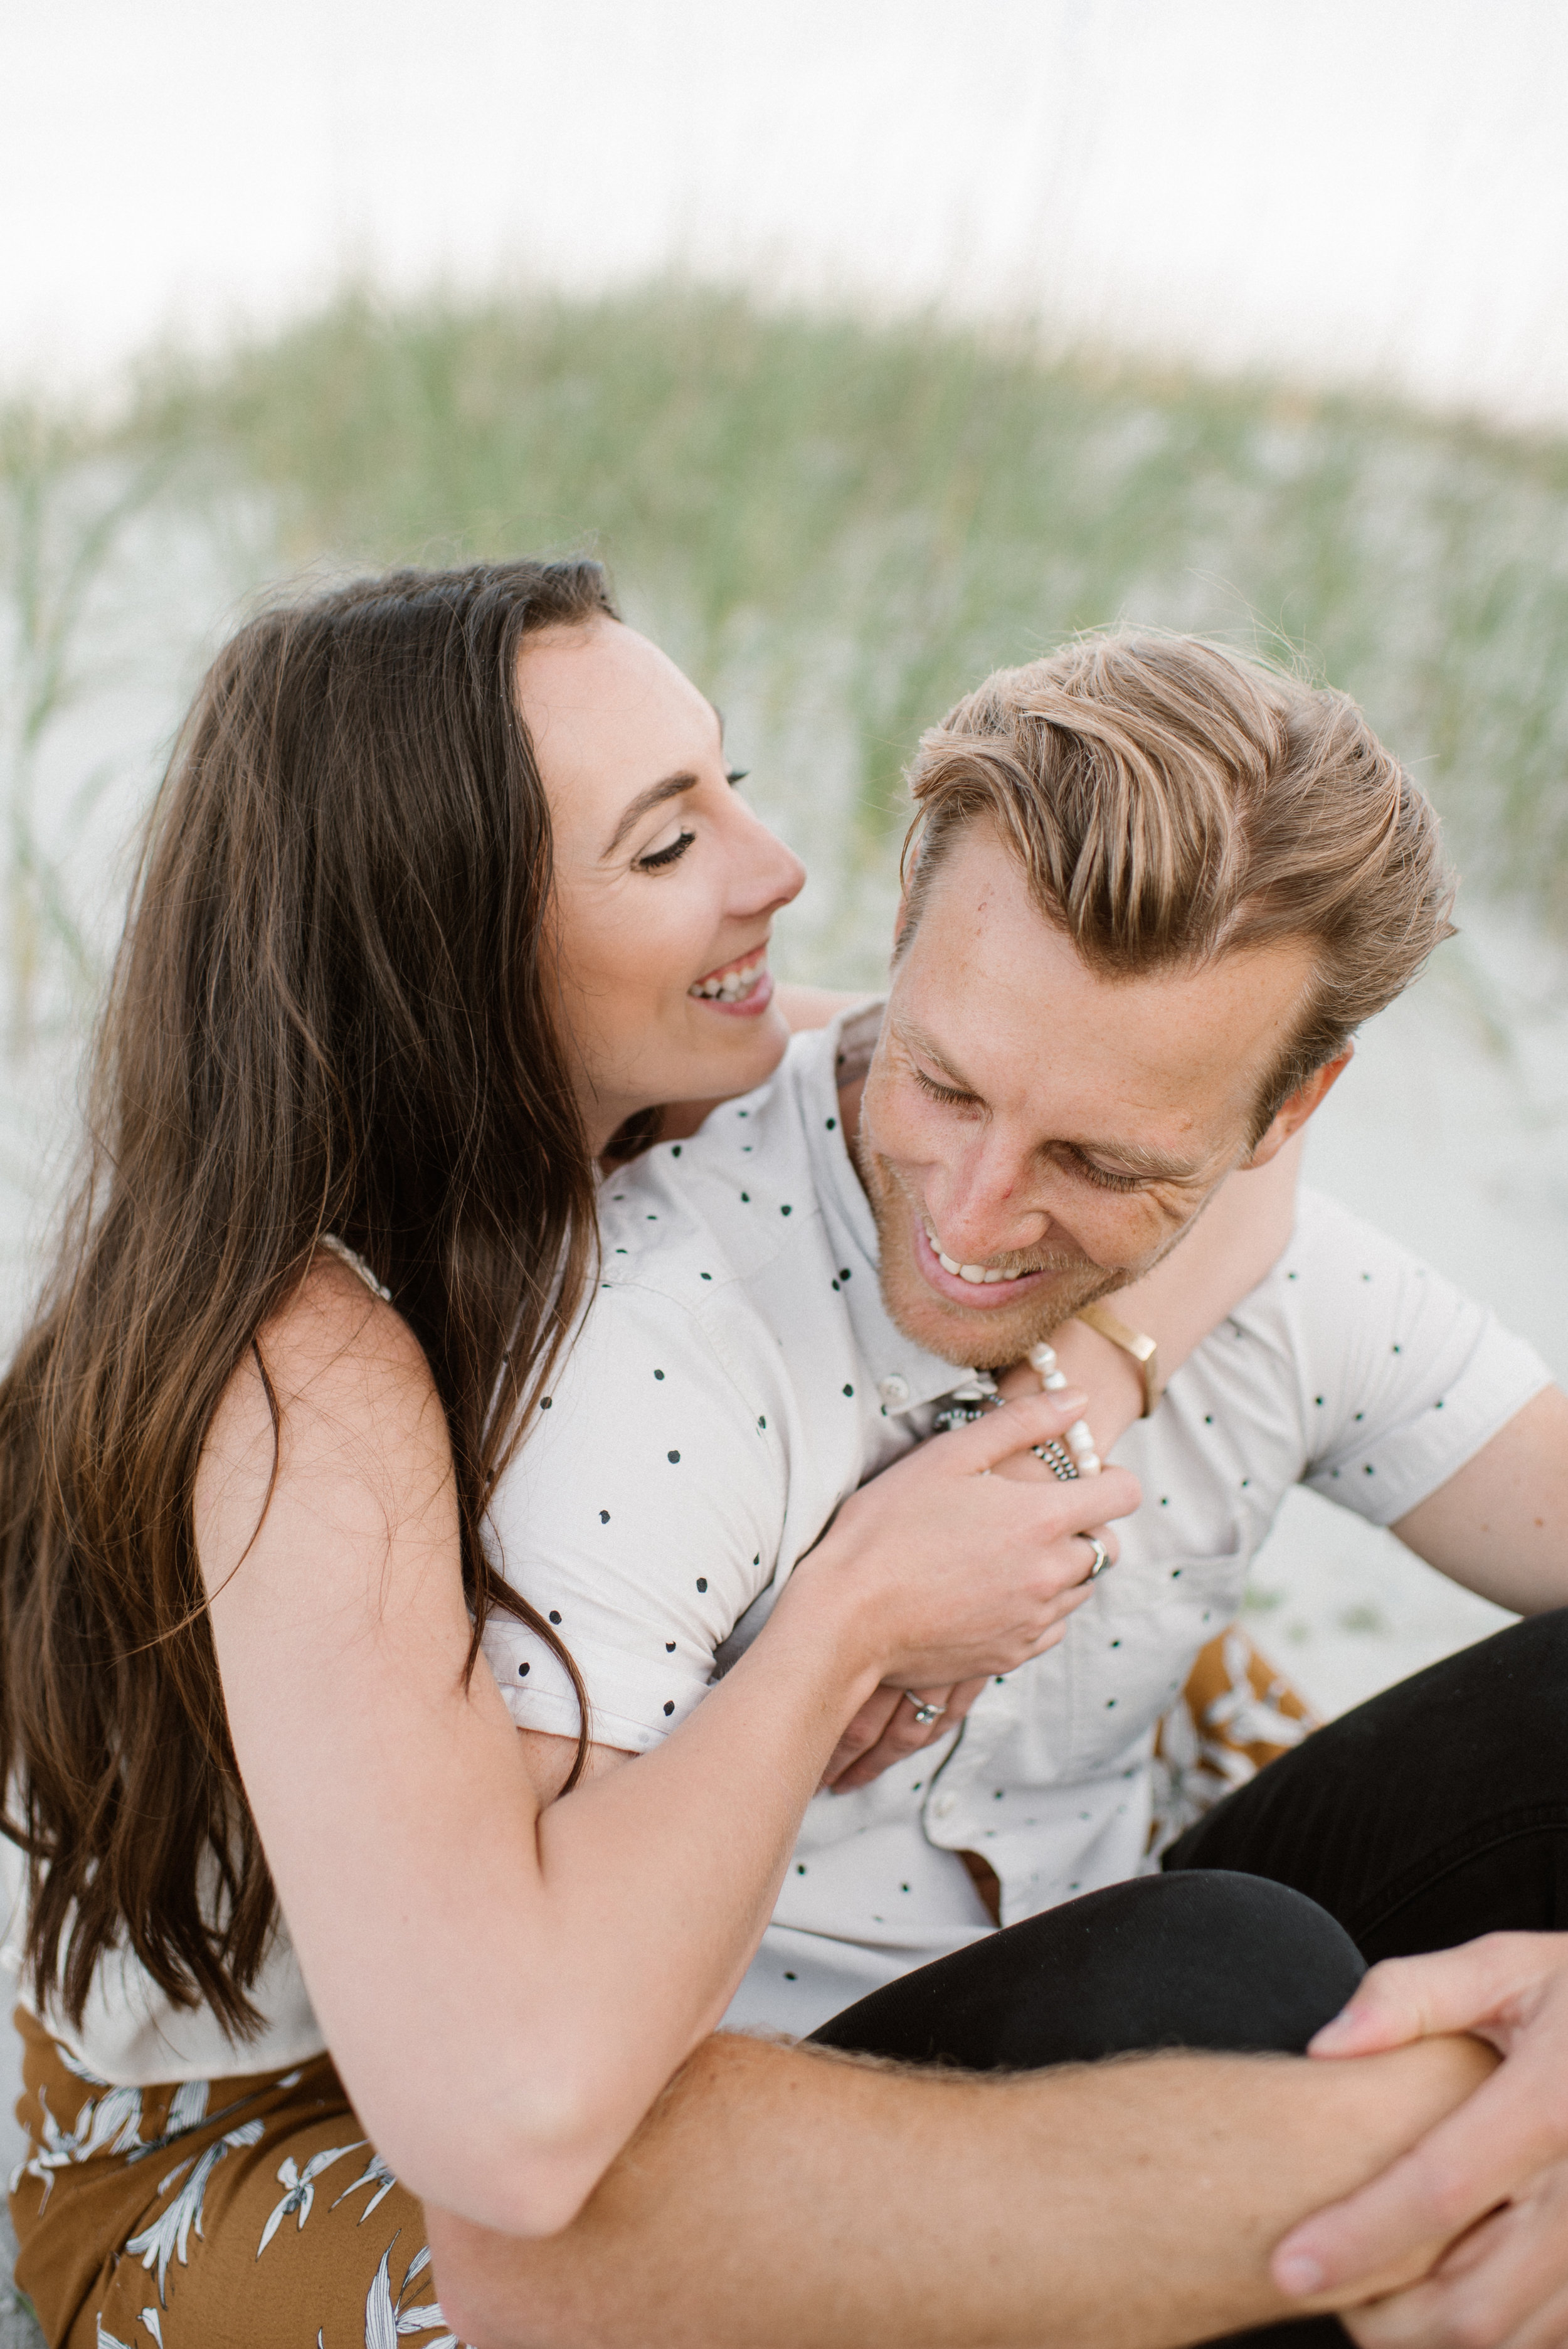 atlantic-beach-engagement-photos-heather-and-cody-70.jpg